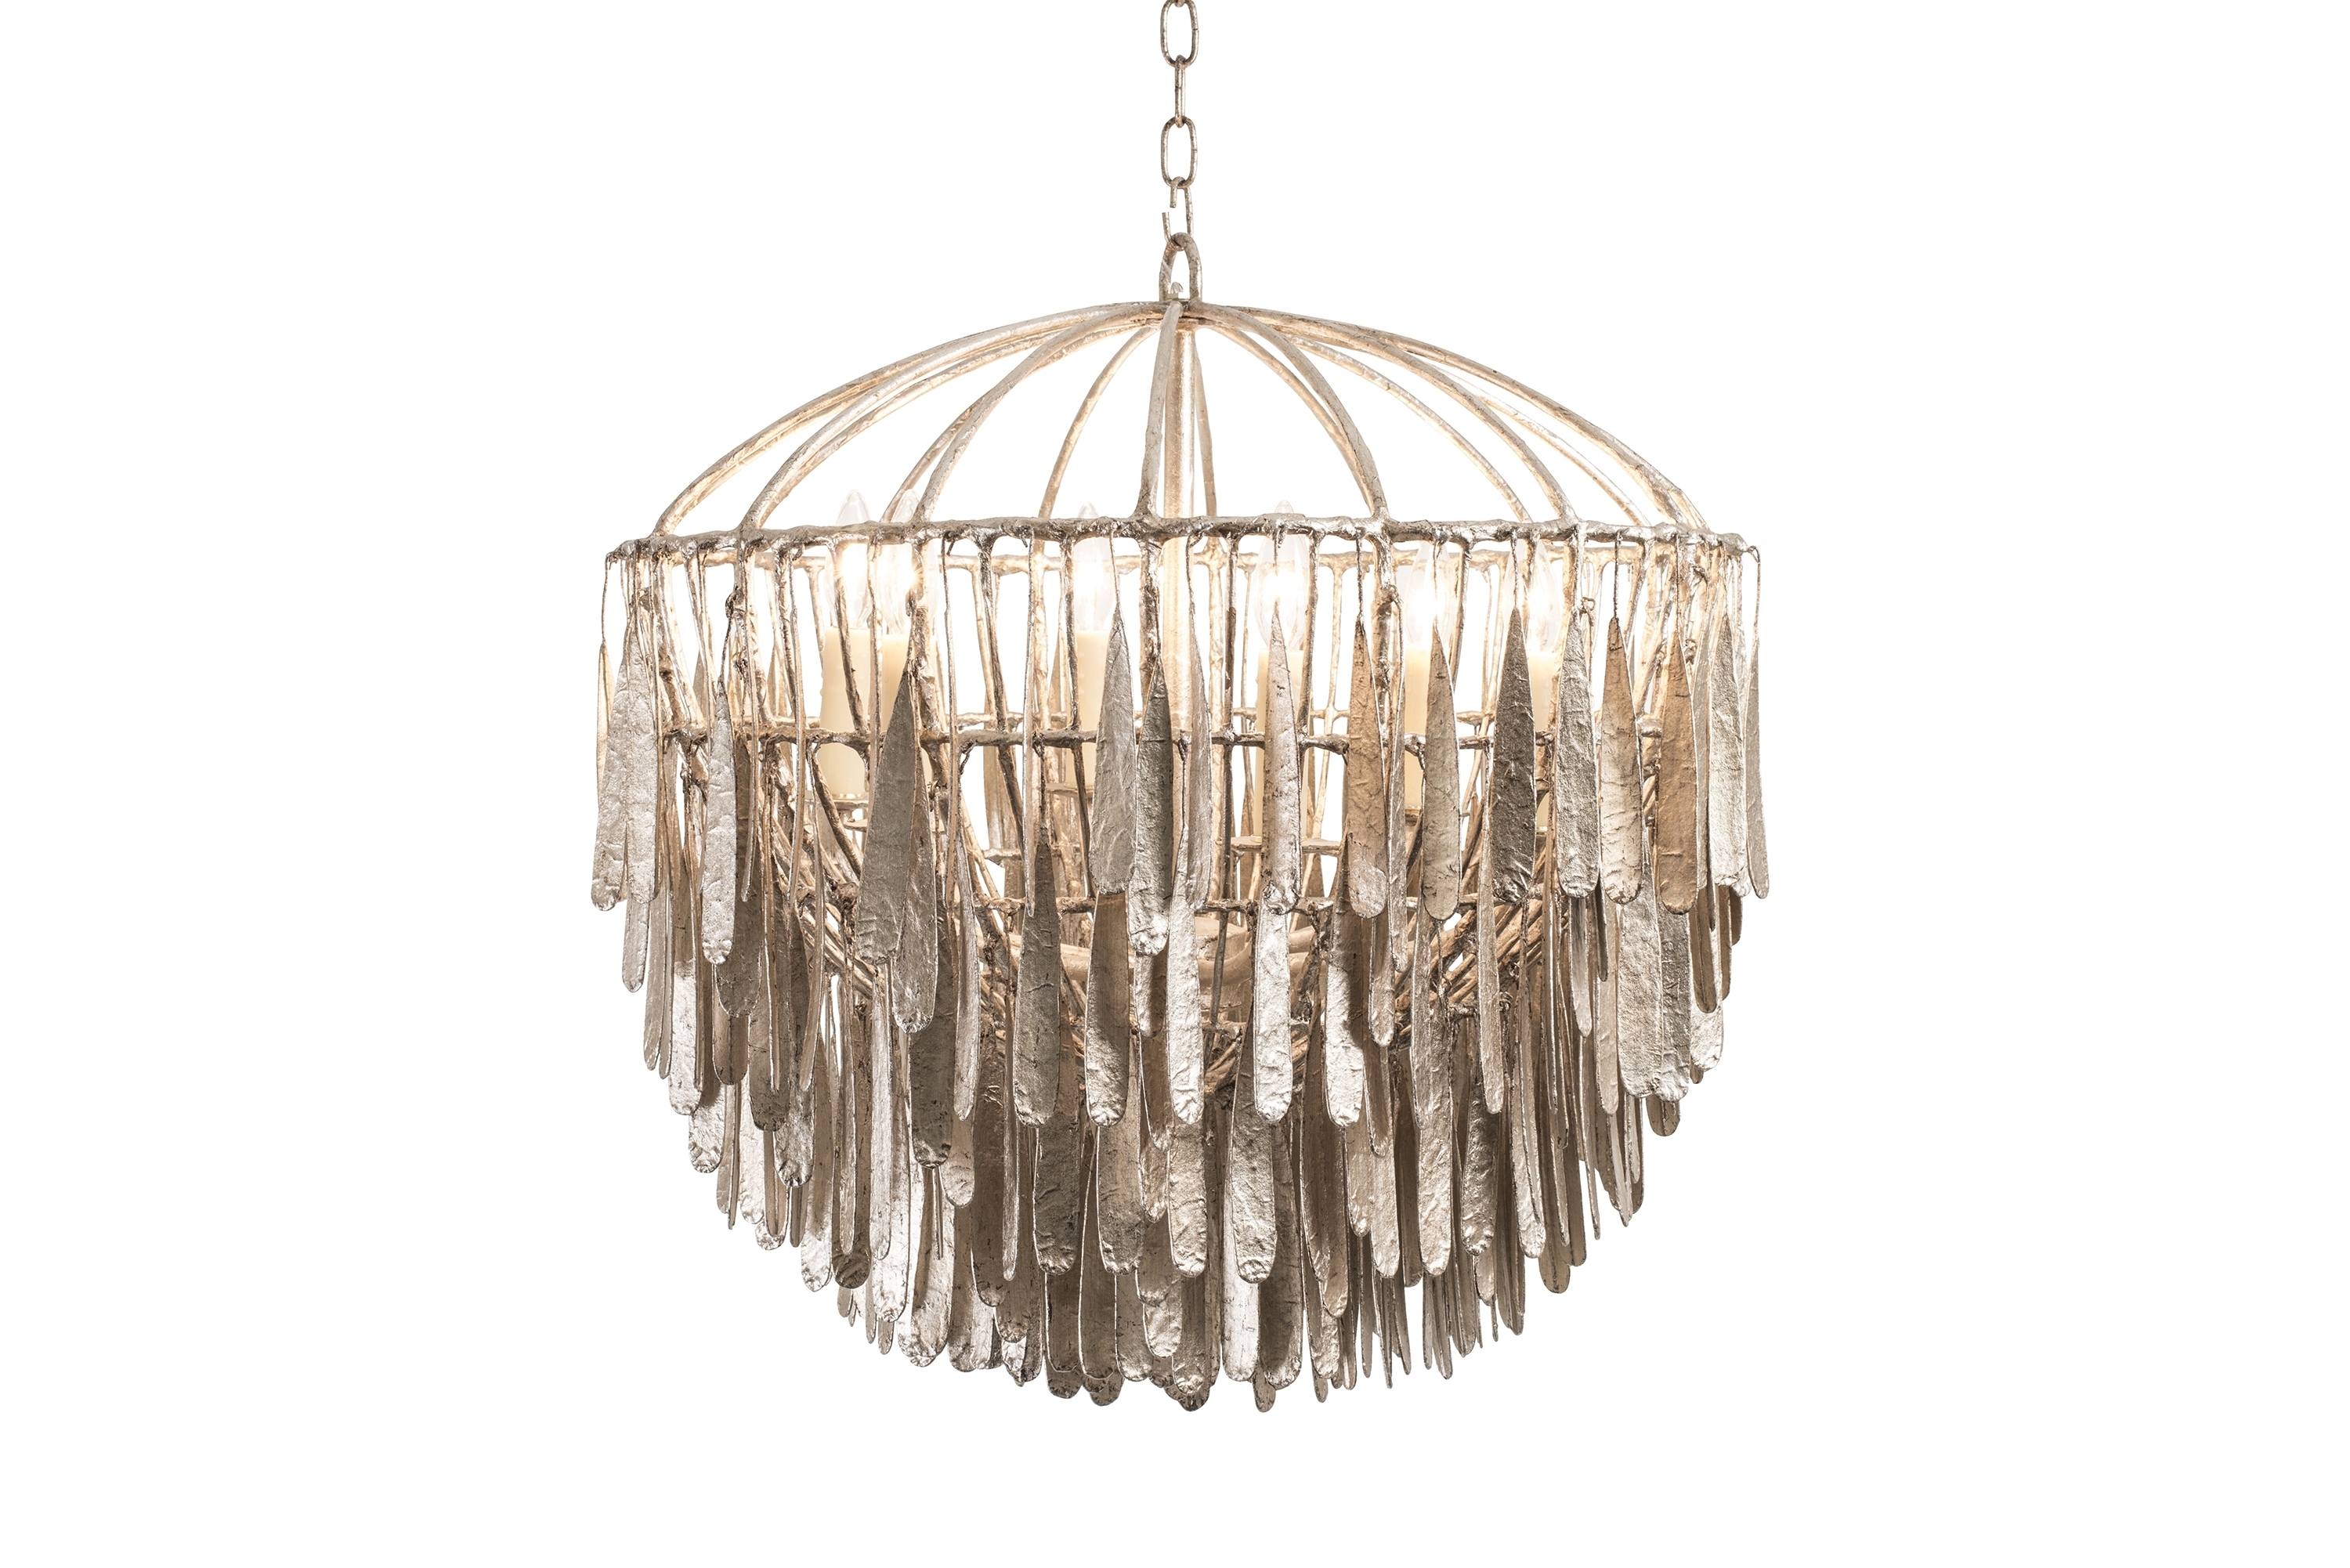 Cage Chandeliers For Best And Newest Modern Round Chandeliers (View 4 of 20)